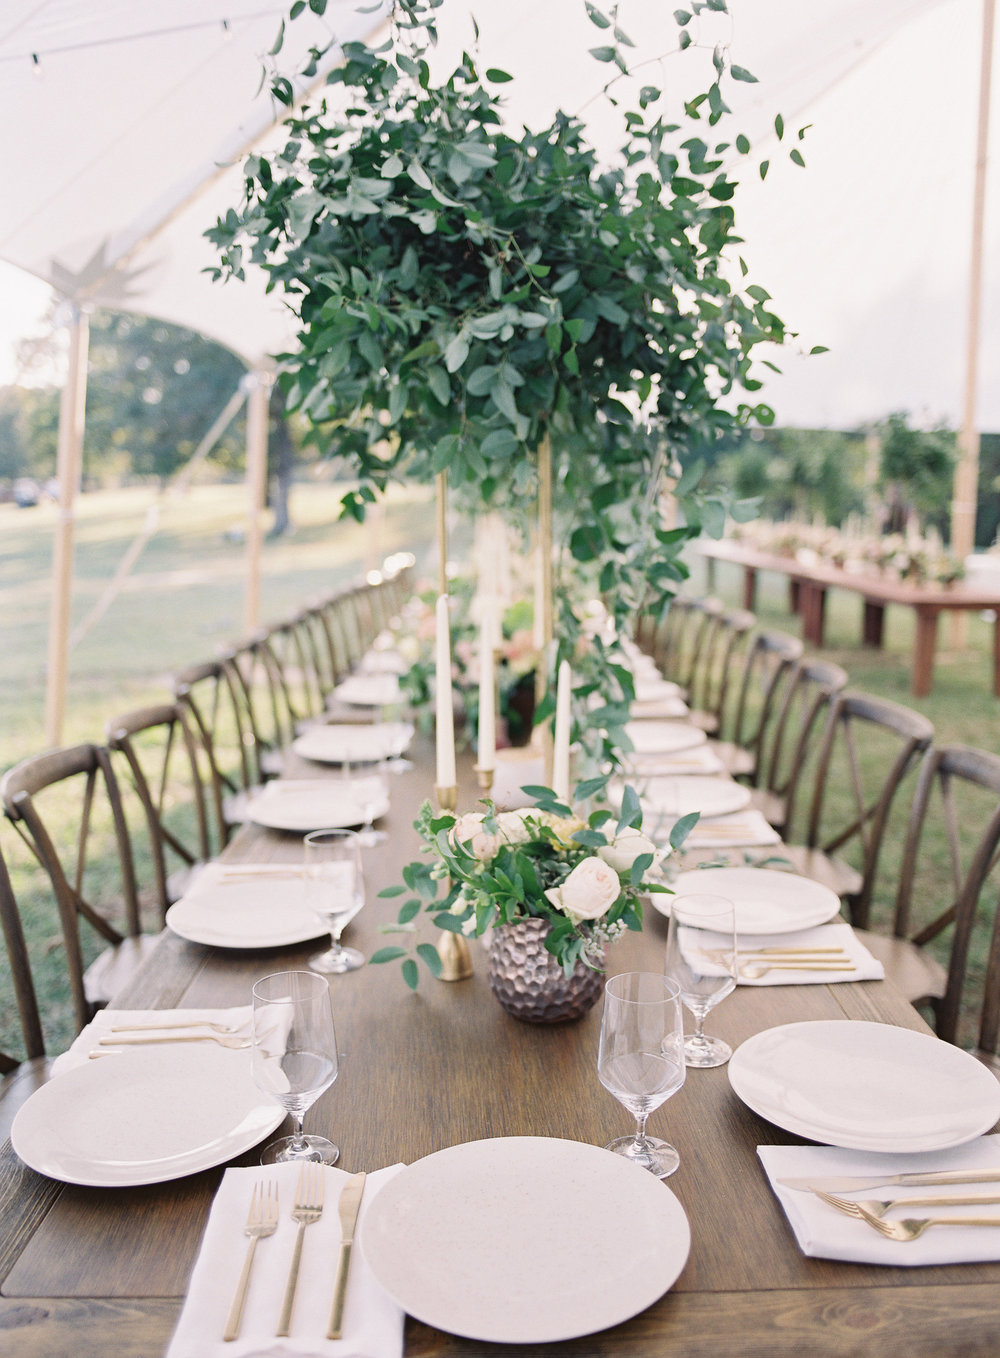 jessica-zimmerman-events-heather-payne-dan-and-shay-wedding-reception-tables.jpg